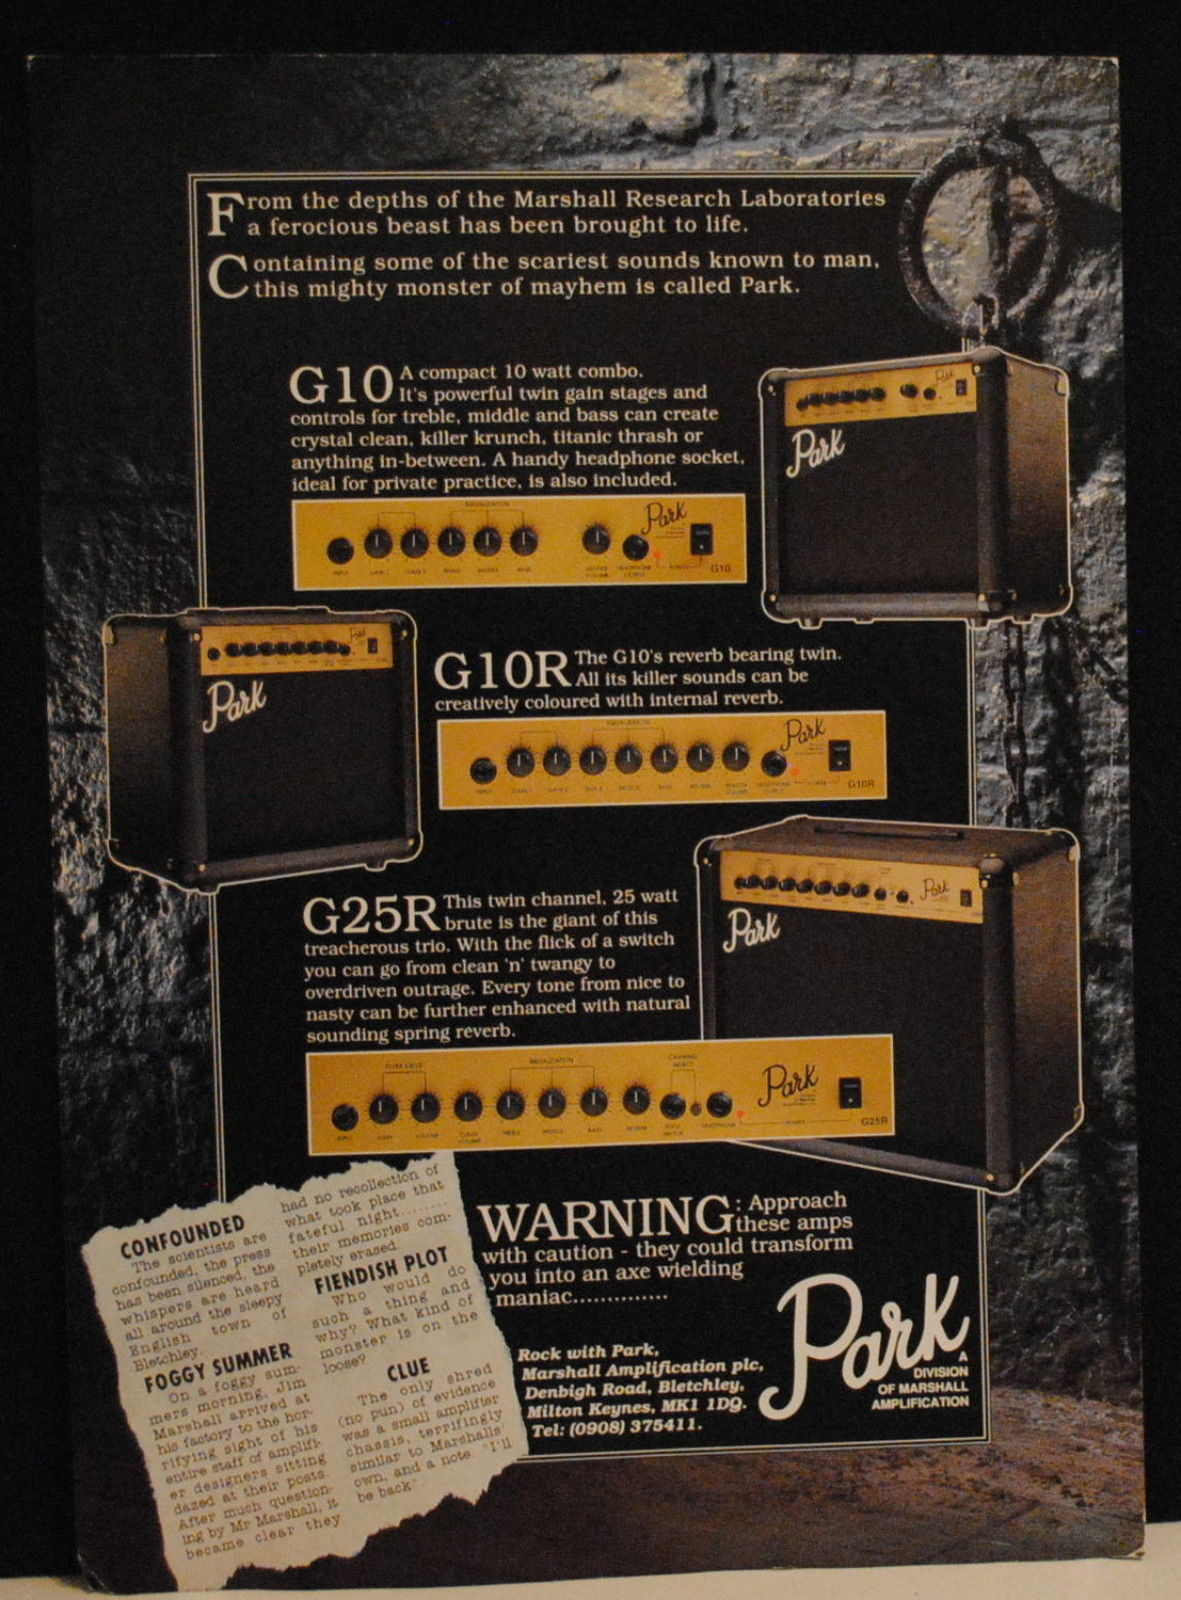 Park G10, G10R, G25R Guitar amplifiers Son of Marshall amps brochure